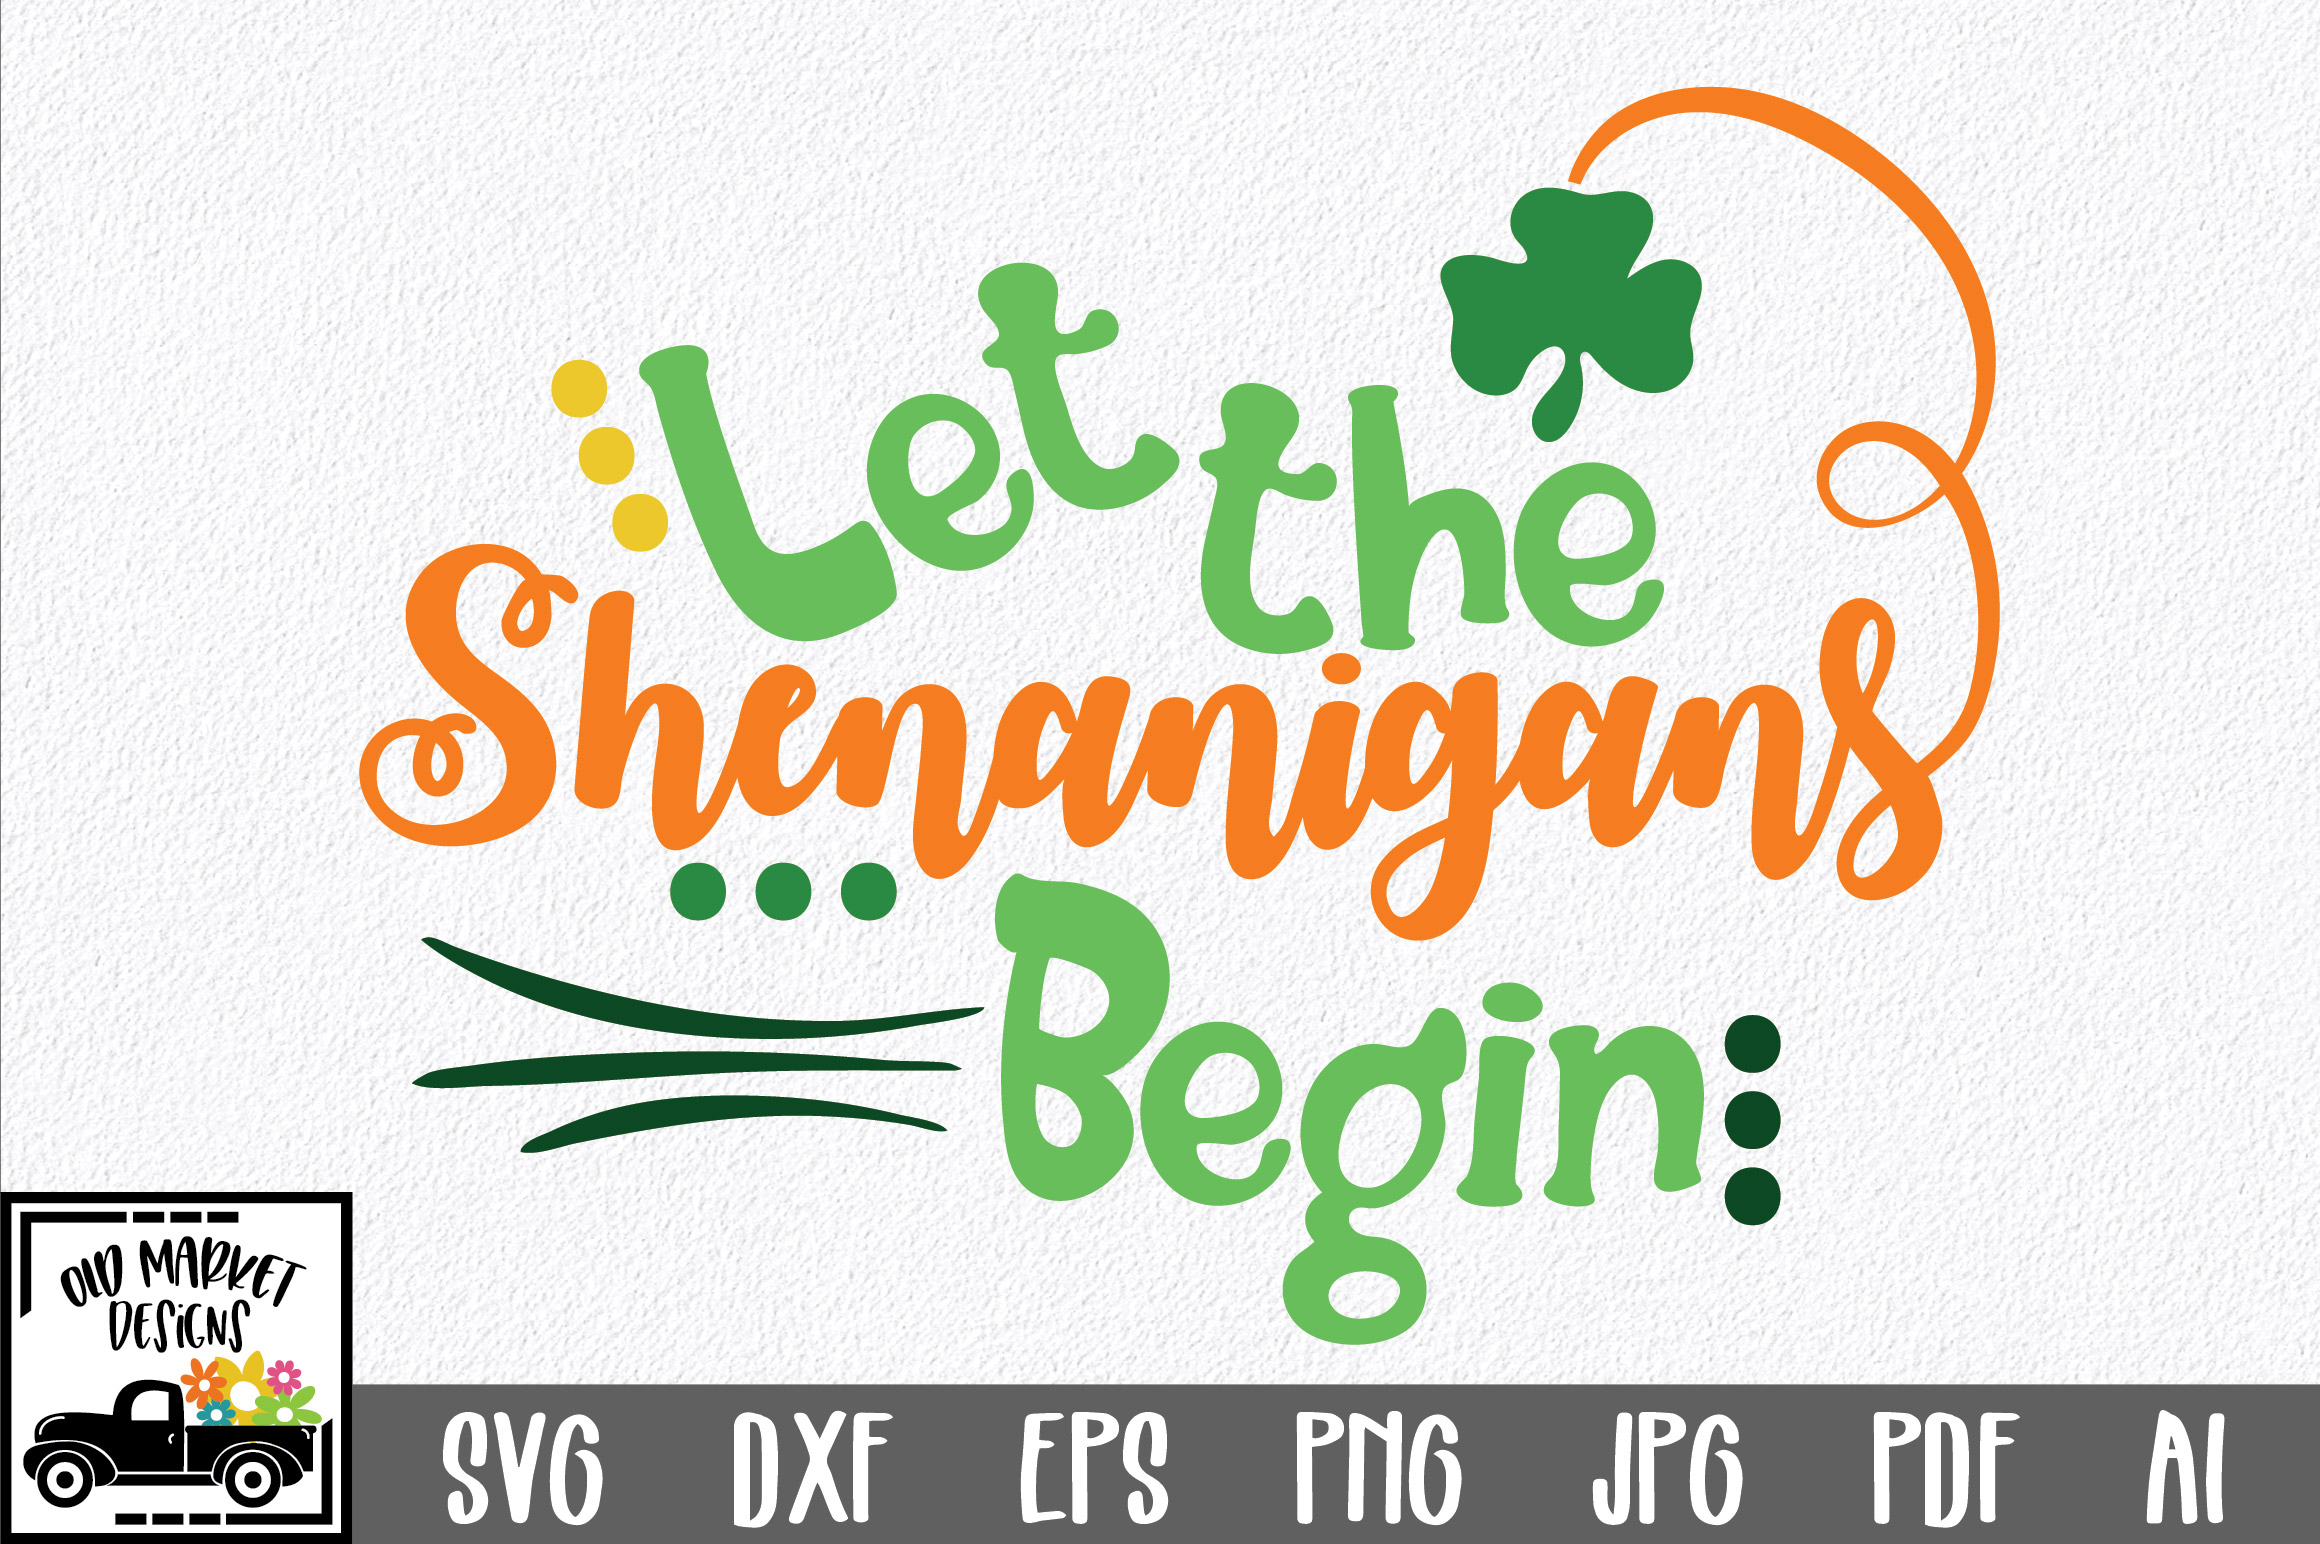 Download Free Let The Shenanigans Begin Svg Graphic By Oldmarketdesigns for Cricut Explore, Silhouette and other cutting machines.